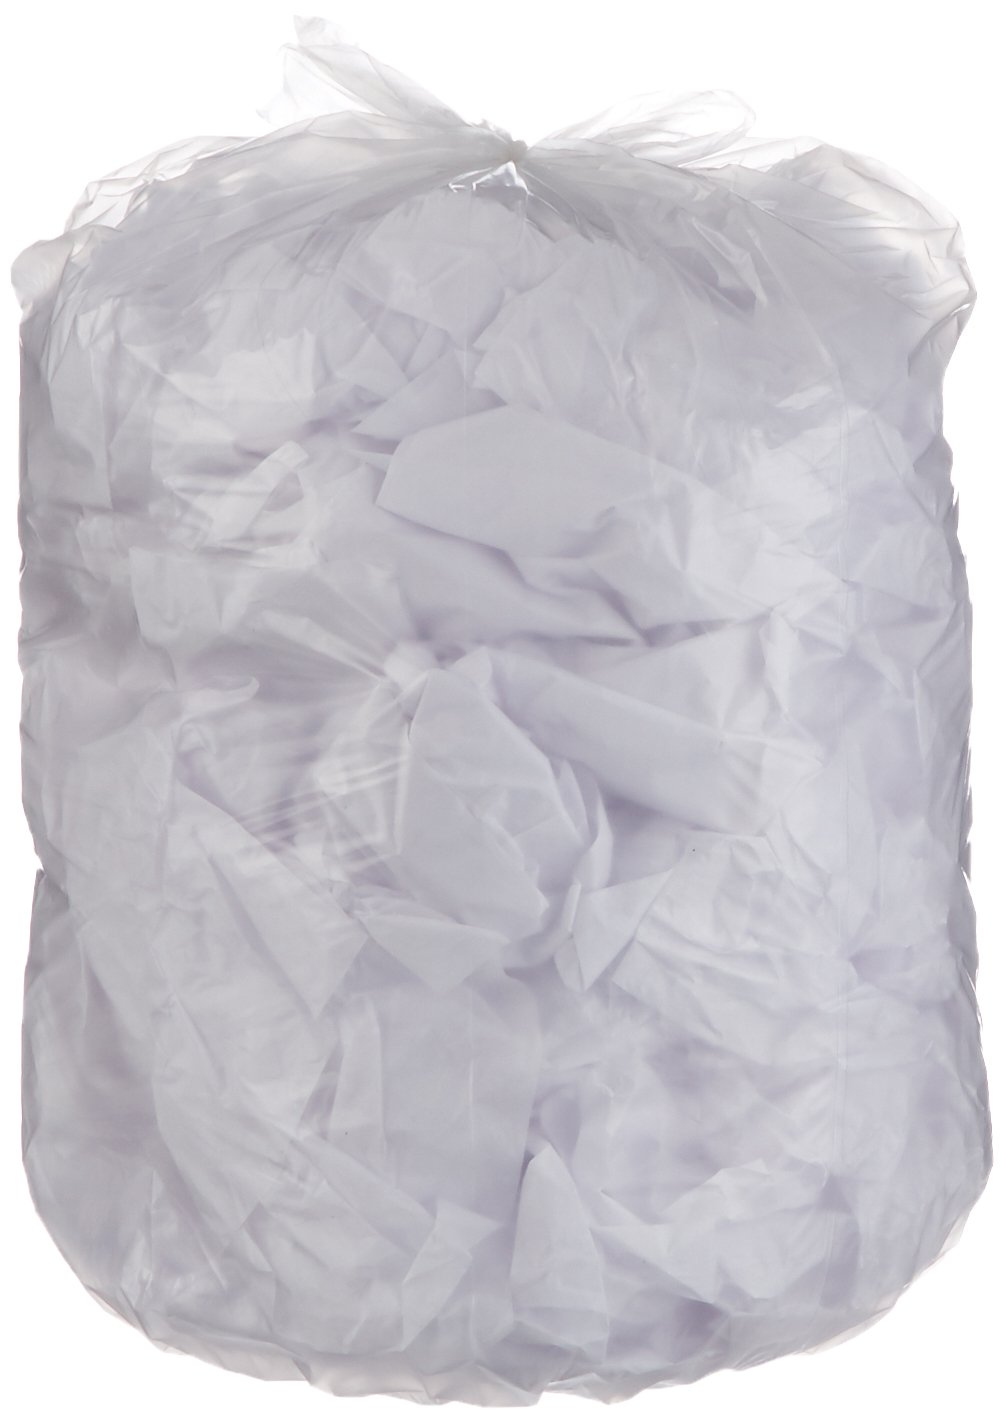 AmazonBasics 23 Gallon Slim Trash Can Liner Bag, 1.1 mil, Clear, 250-Count by AmazonBasics